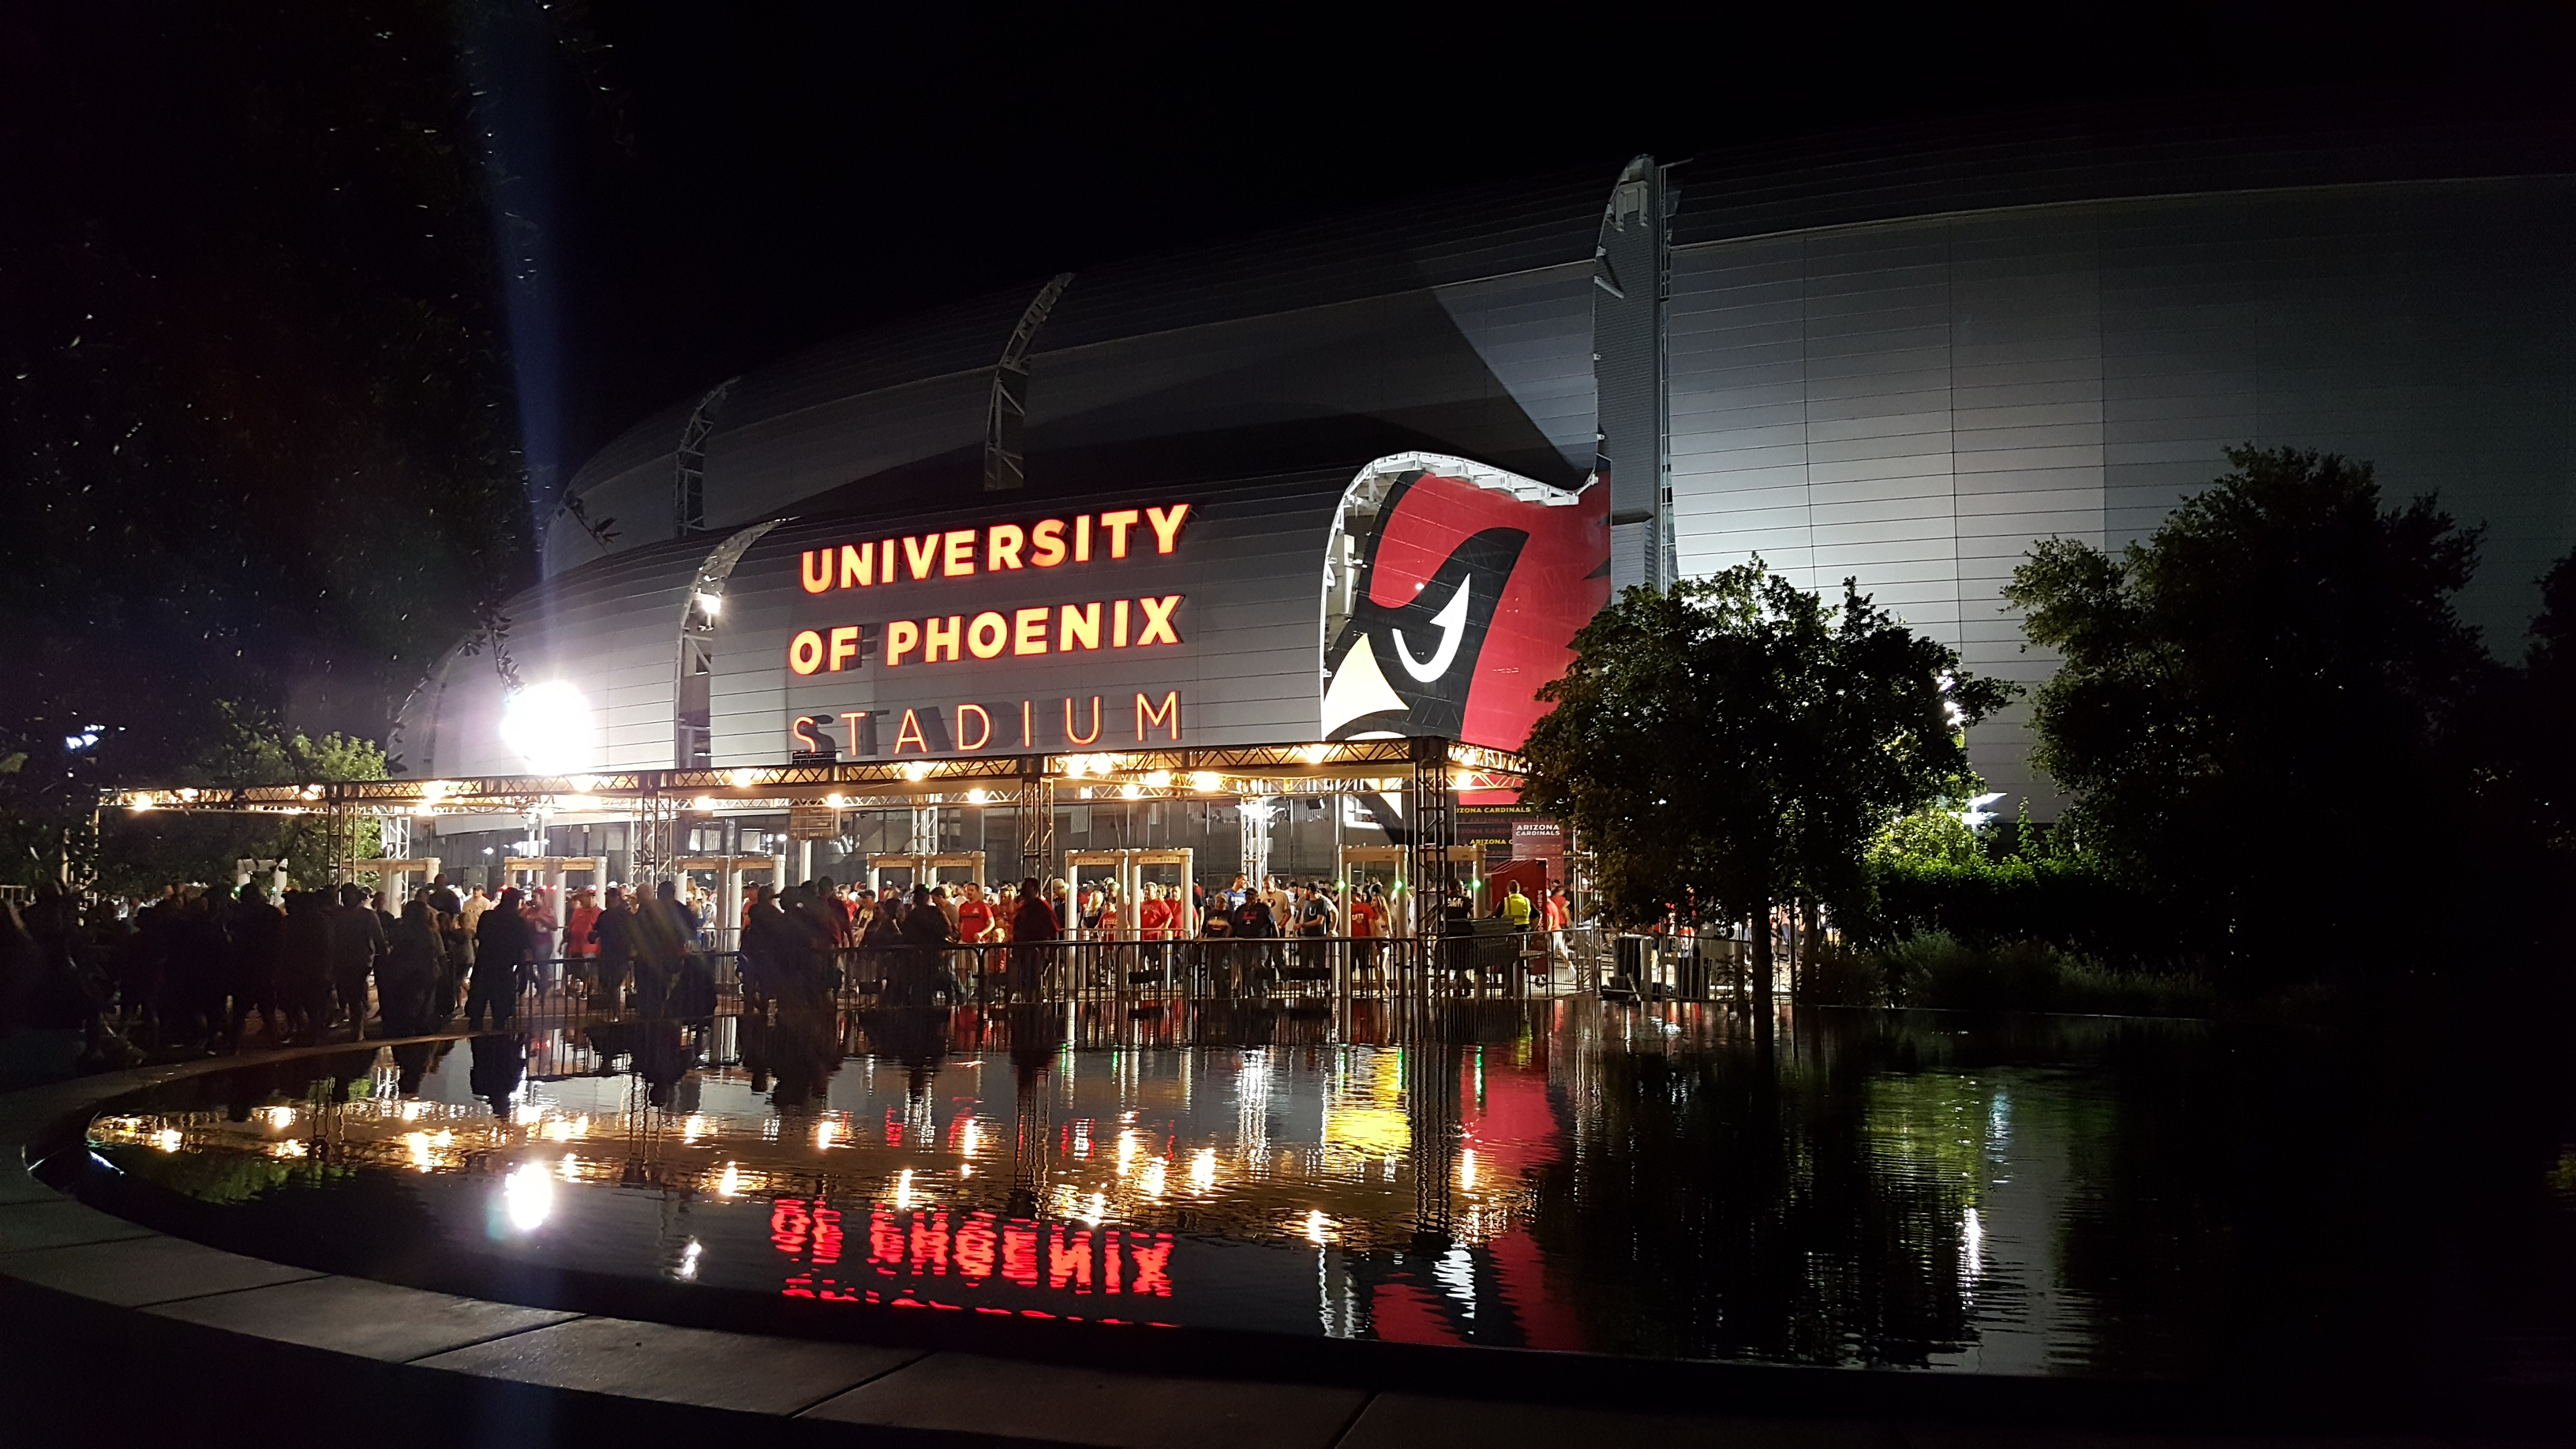 NFL Arizona Cardinal's football stadium in Glendale, AZ